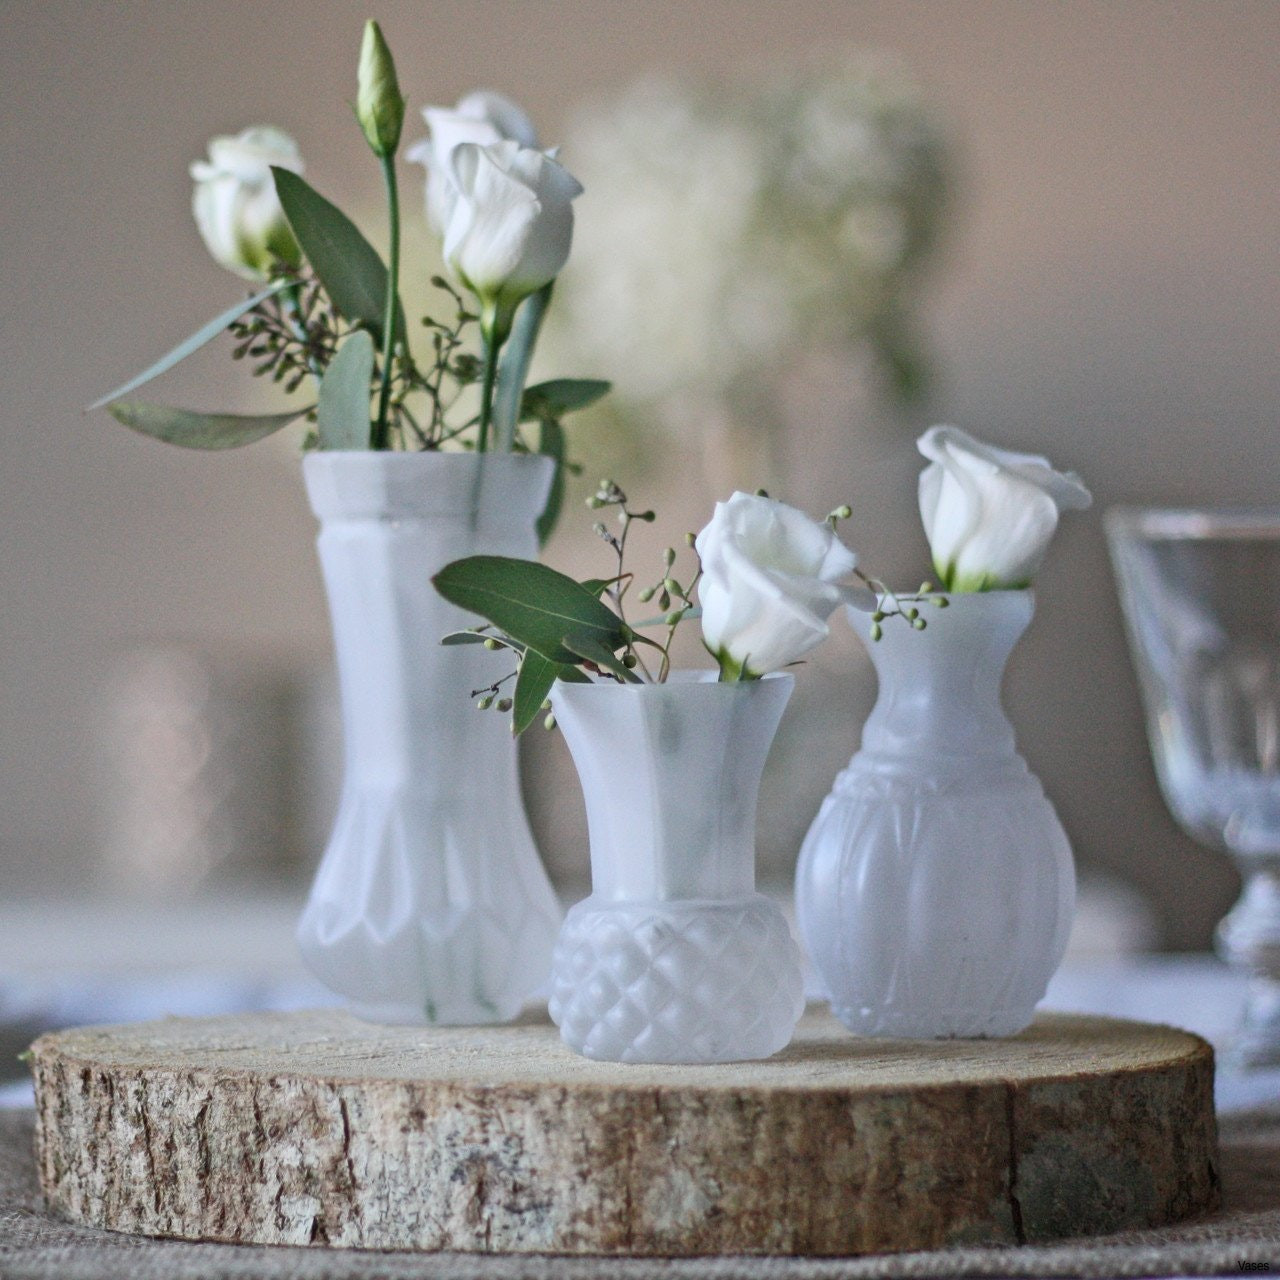 11 Stylish Tall White Vases for Wedding Centerpieces